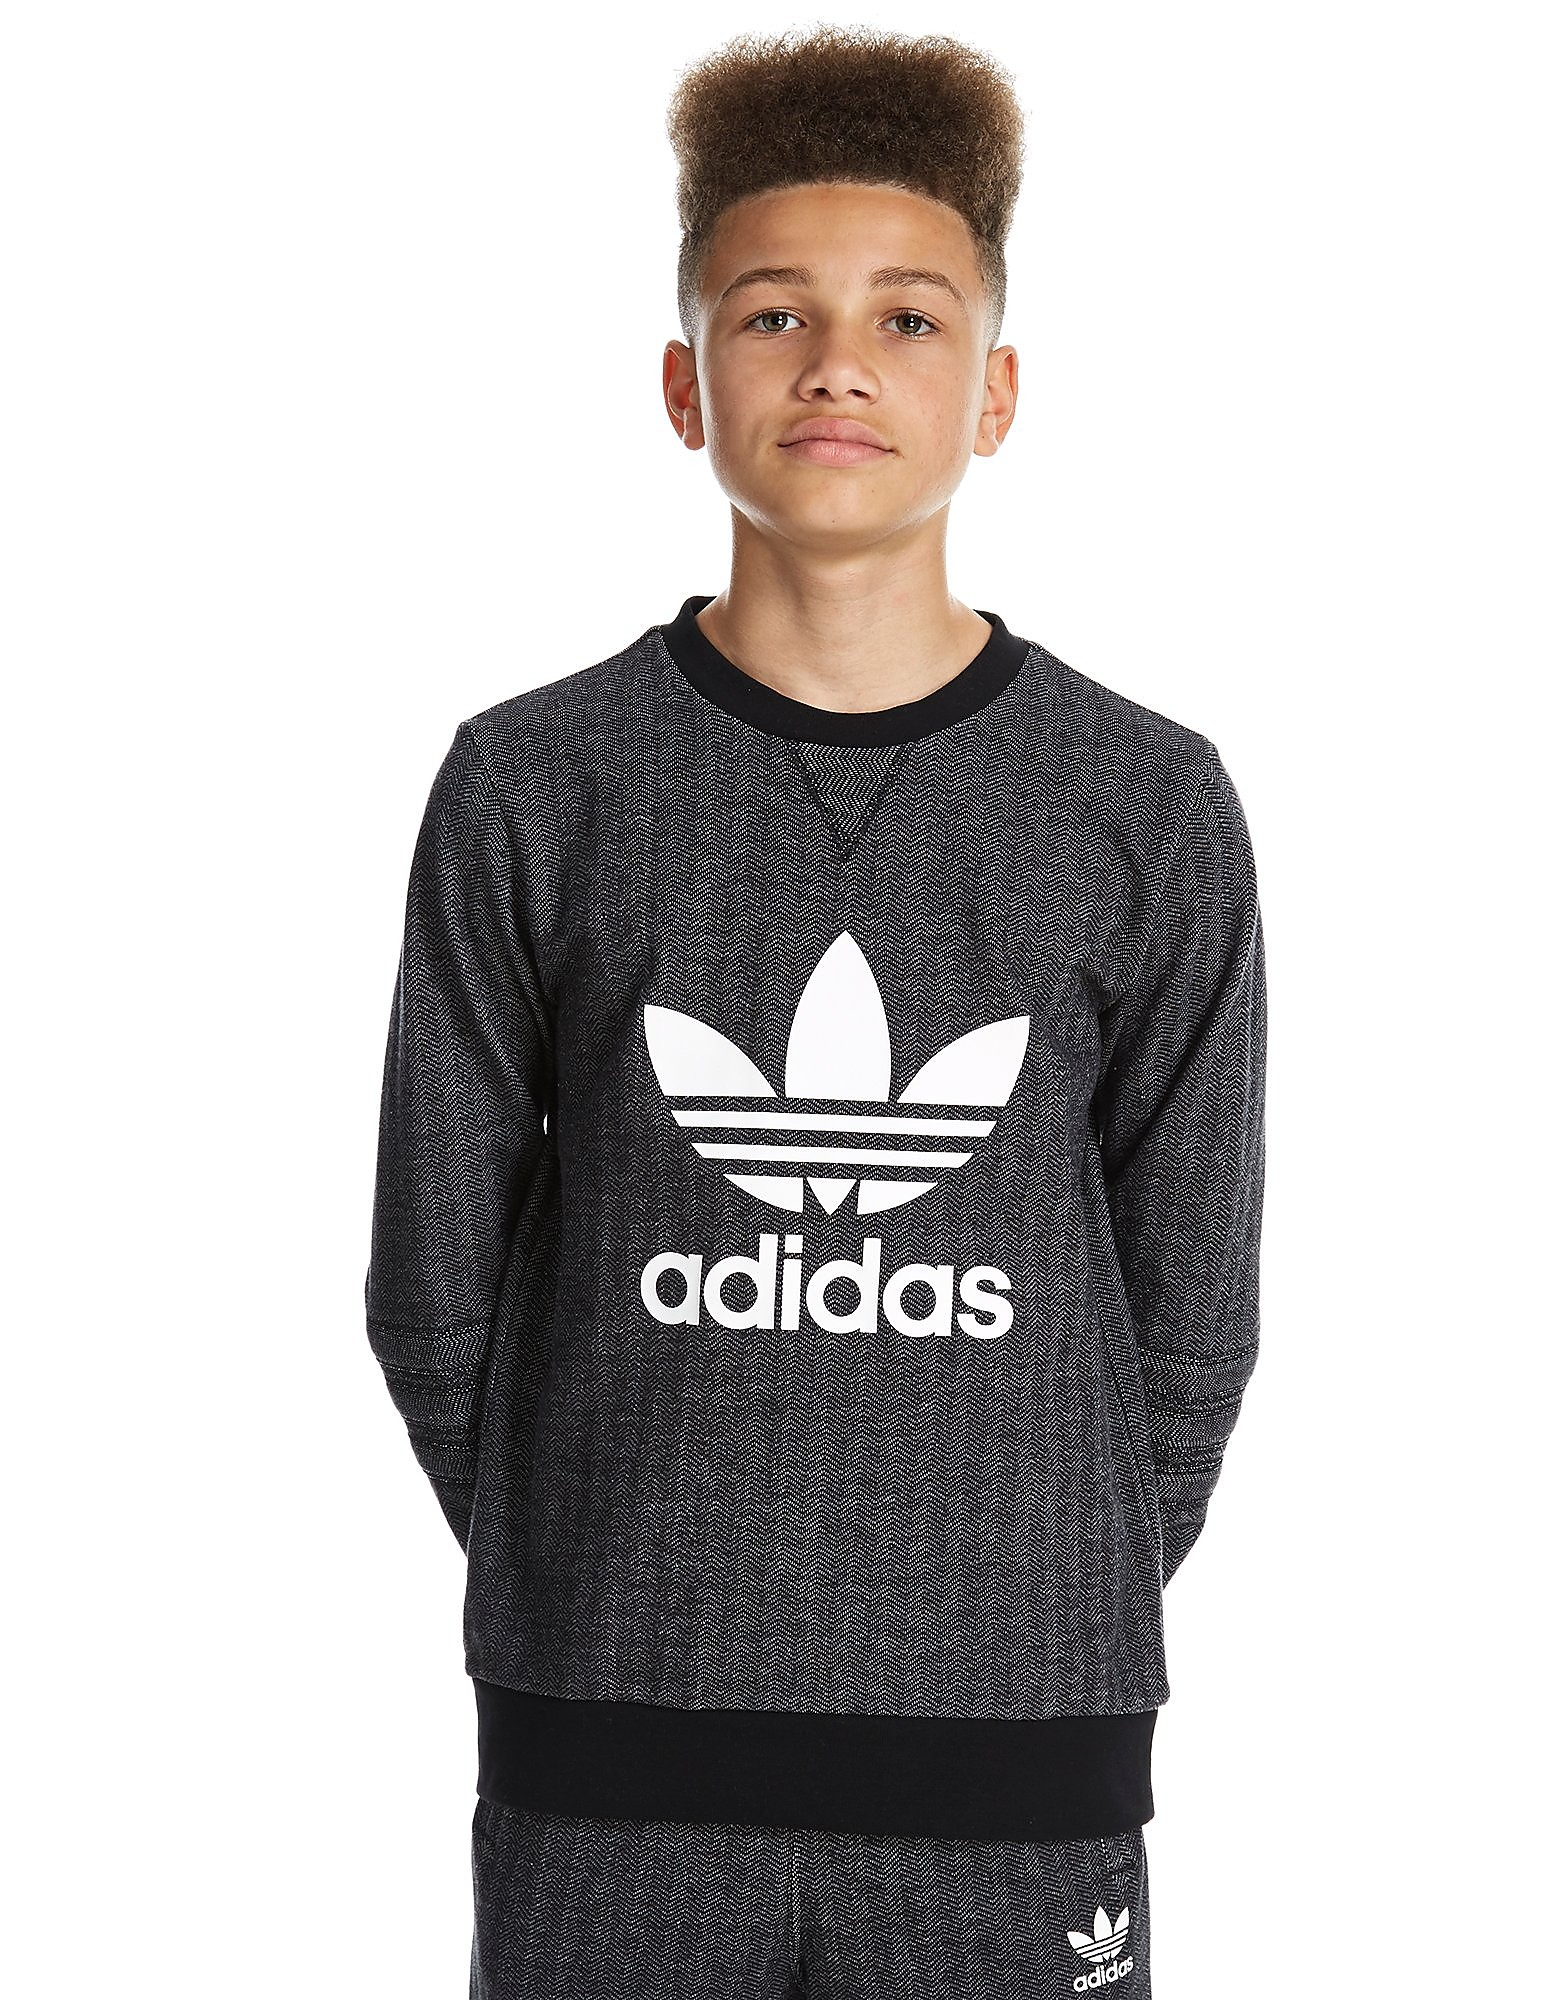 adidas Originals Sweatshirt Trefoil Junior